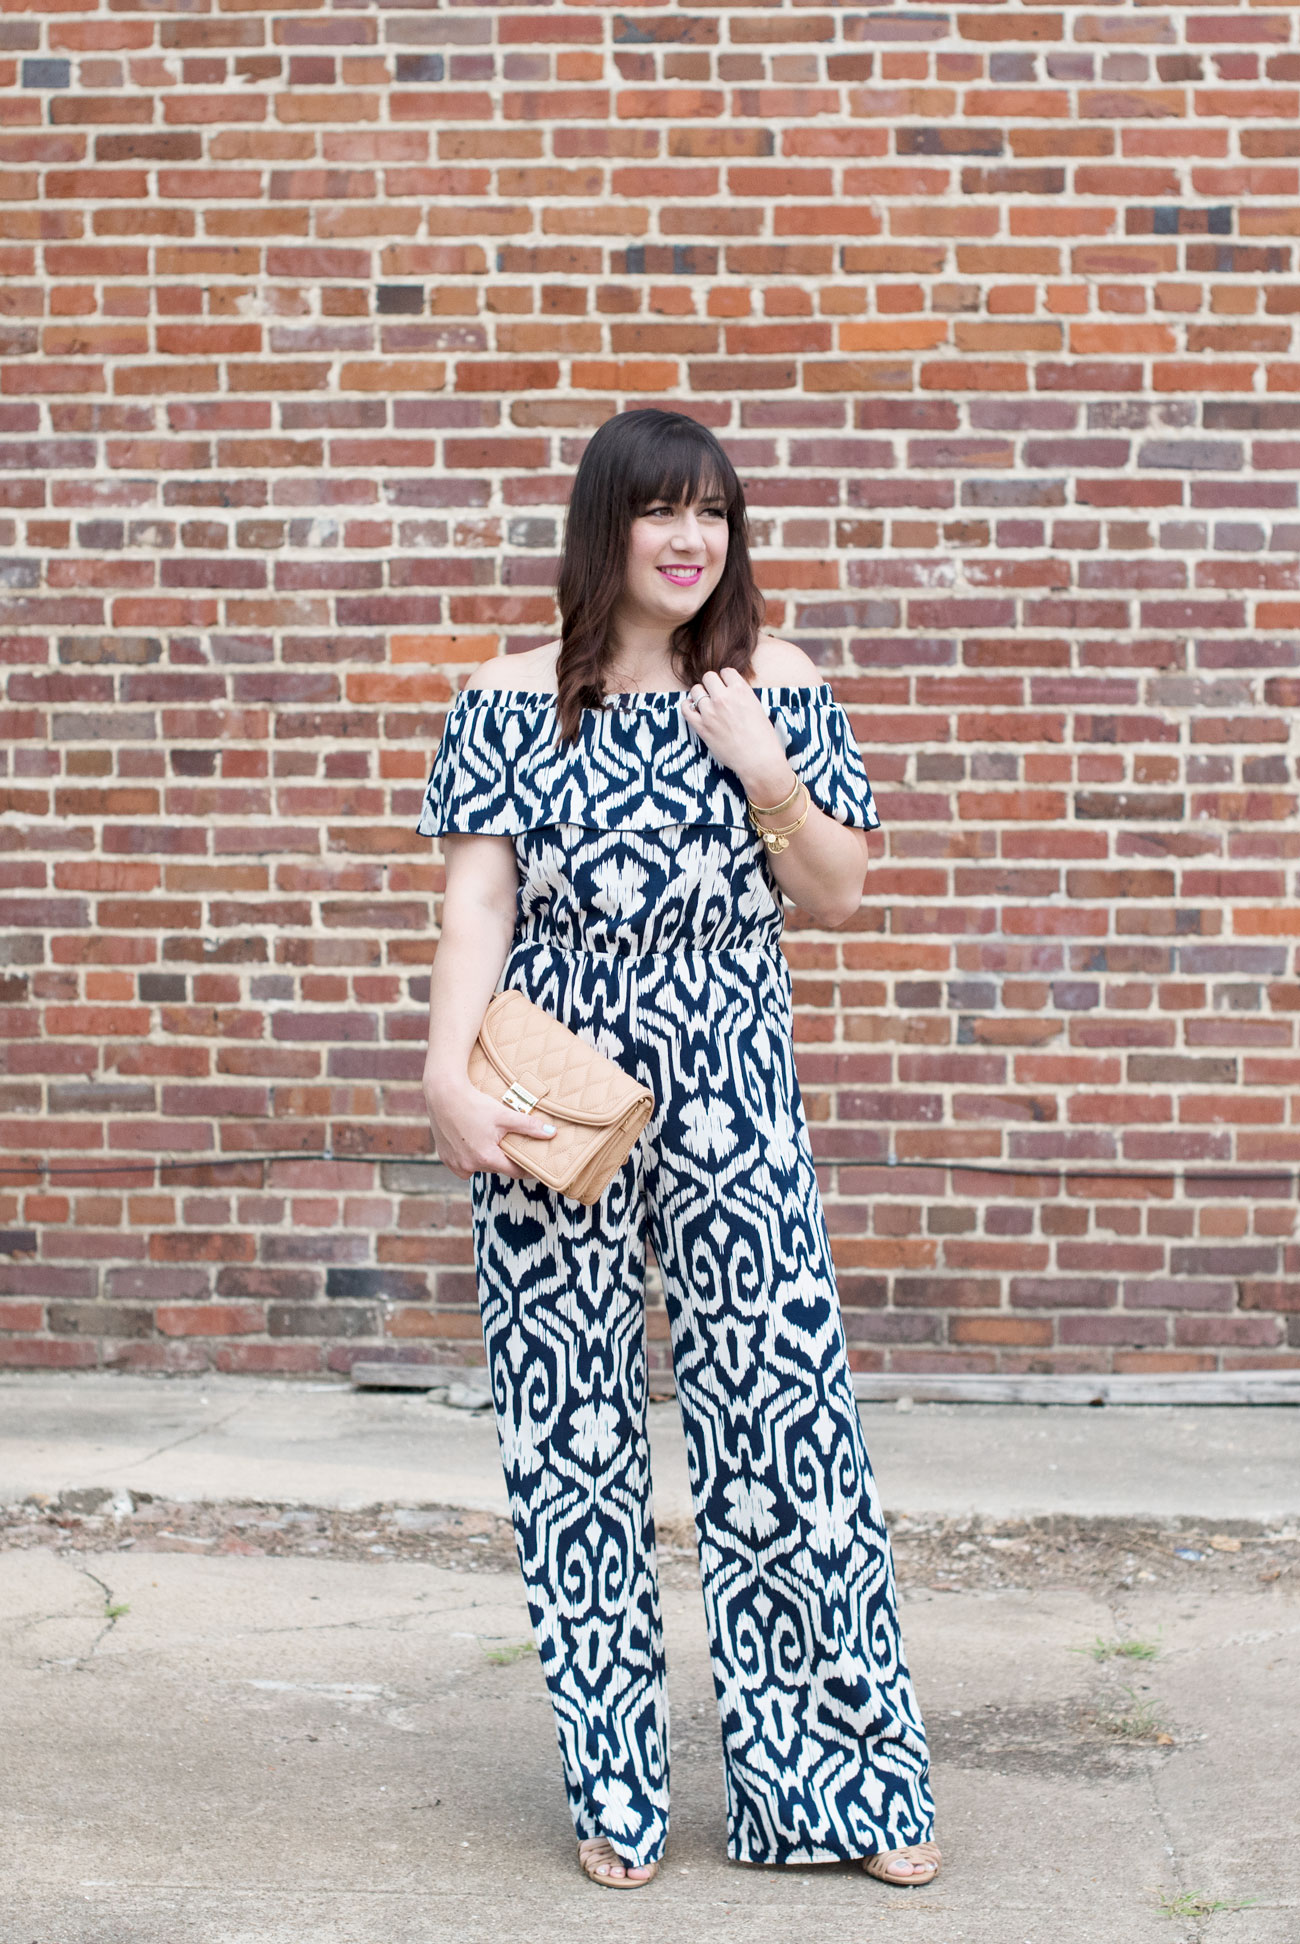 Molly is styling a fun Fab'rik jumpsuit and a Vera Bradley Crossbody | What to wear to a Class Reunion featured by top US fashion blogger, Miss Molly Moon: image of a woman wearing a Fab'ric patterned jumpsuit, a Vera Bradley bag and Target shoes